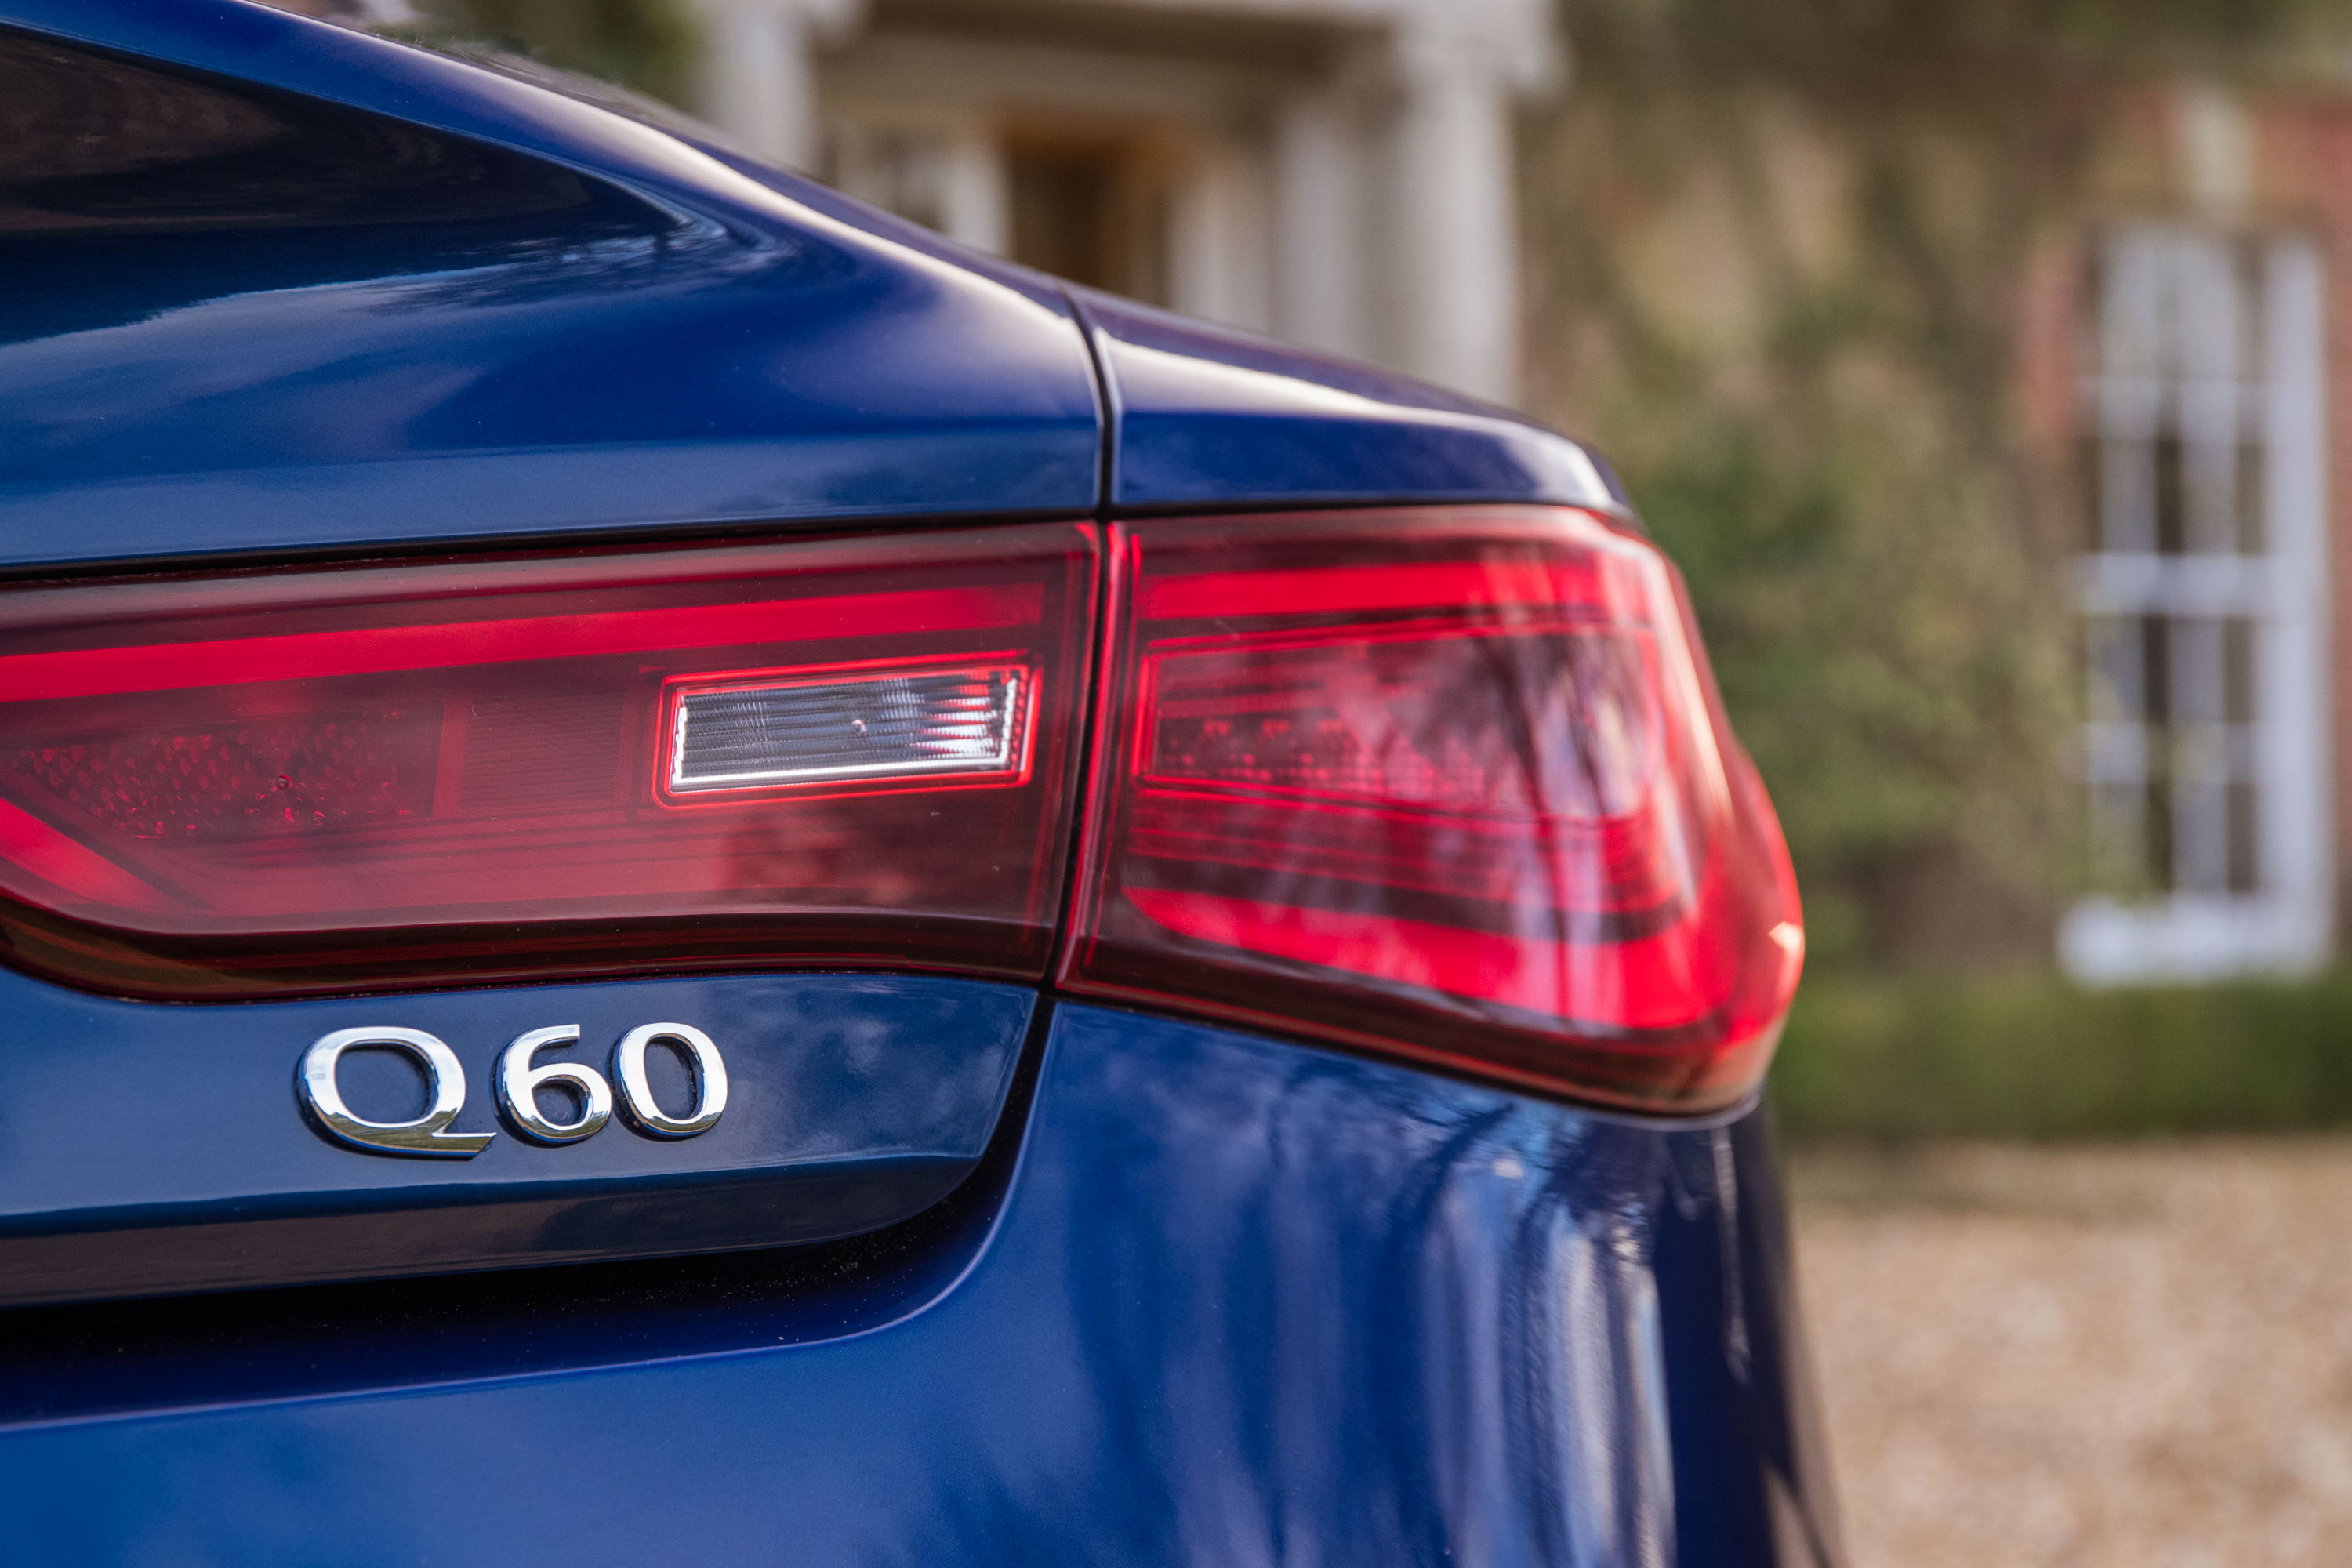 Flat-Out Infiniti Q60 badge